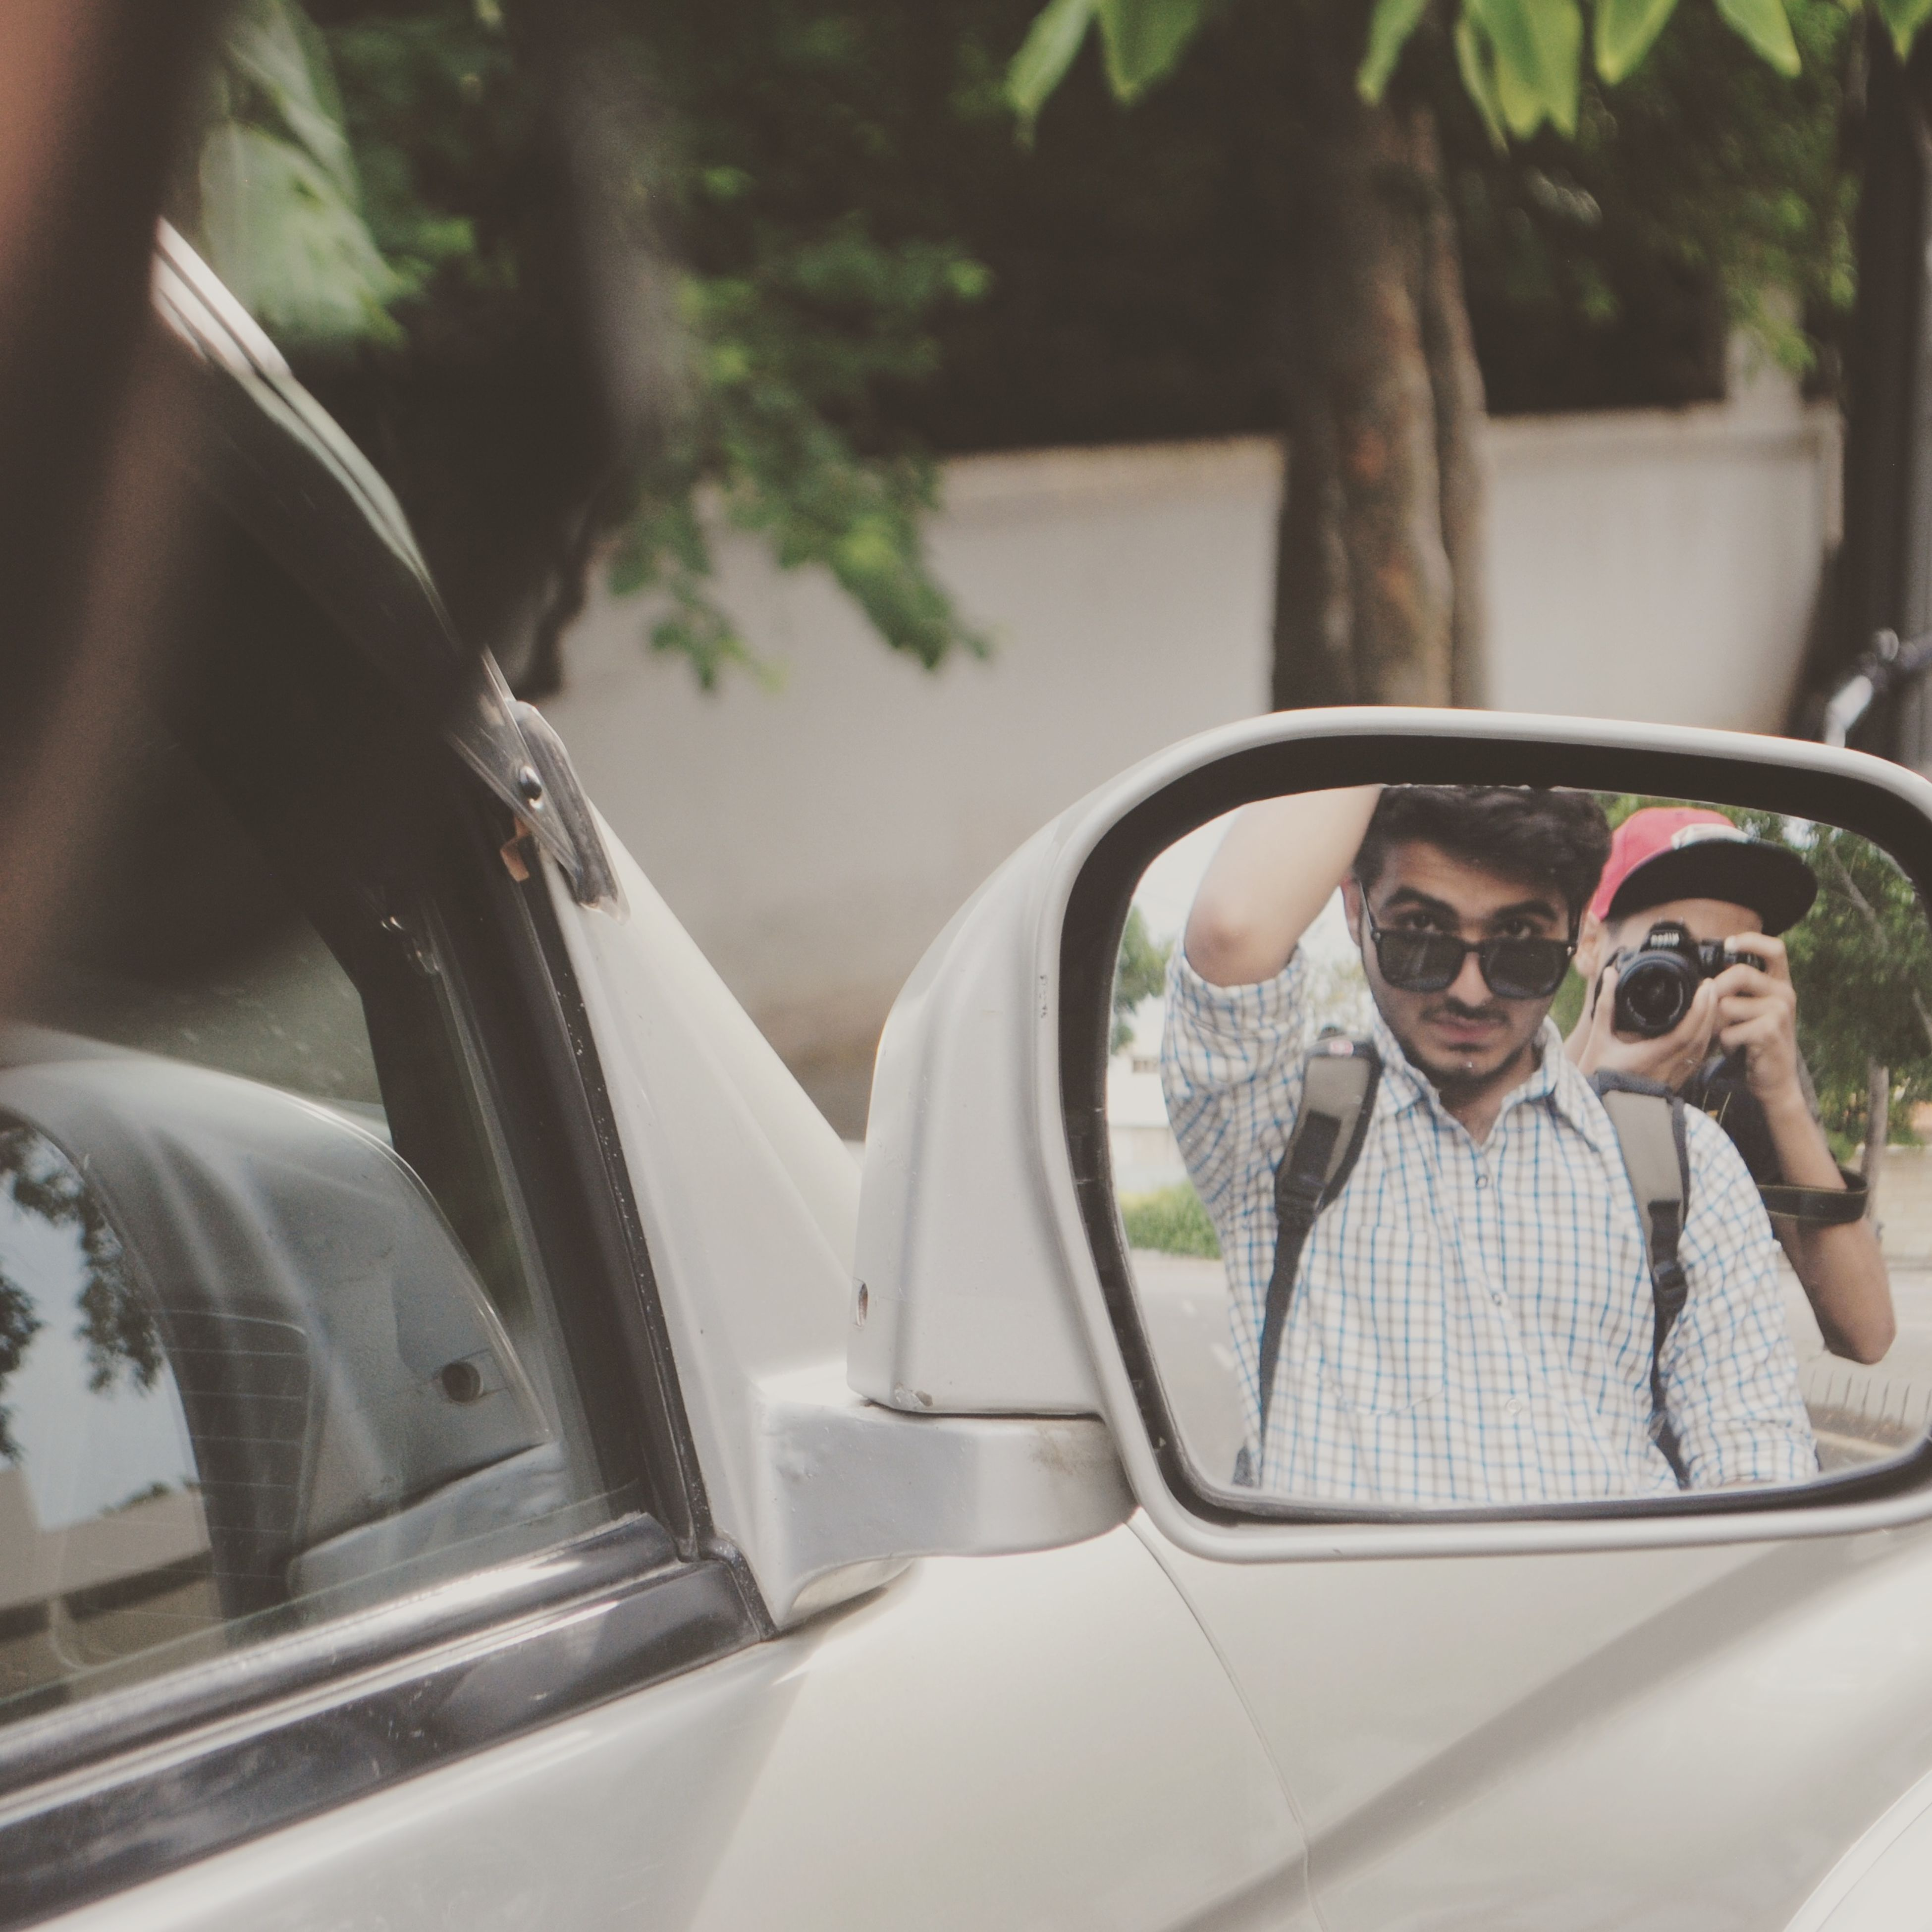 transportation, car, mode of transport, land vehicle, sunglasses, leisure activity, window, reflection, front view, young adult, looking at camera, day, focus on foreground, person